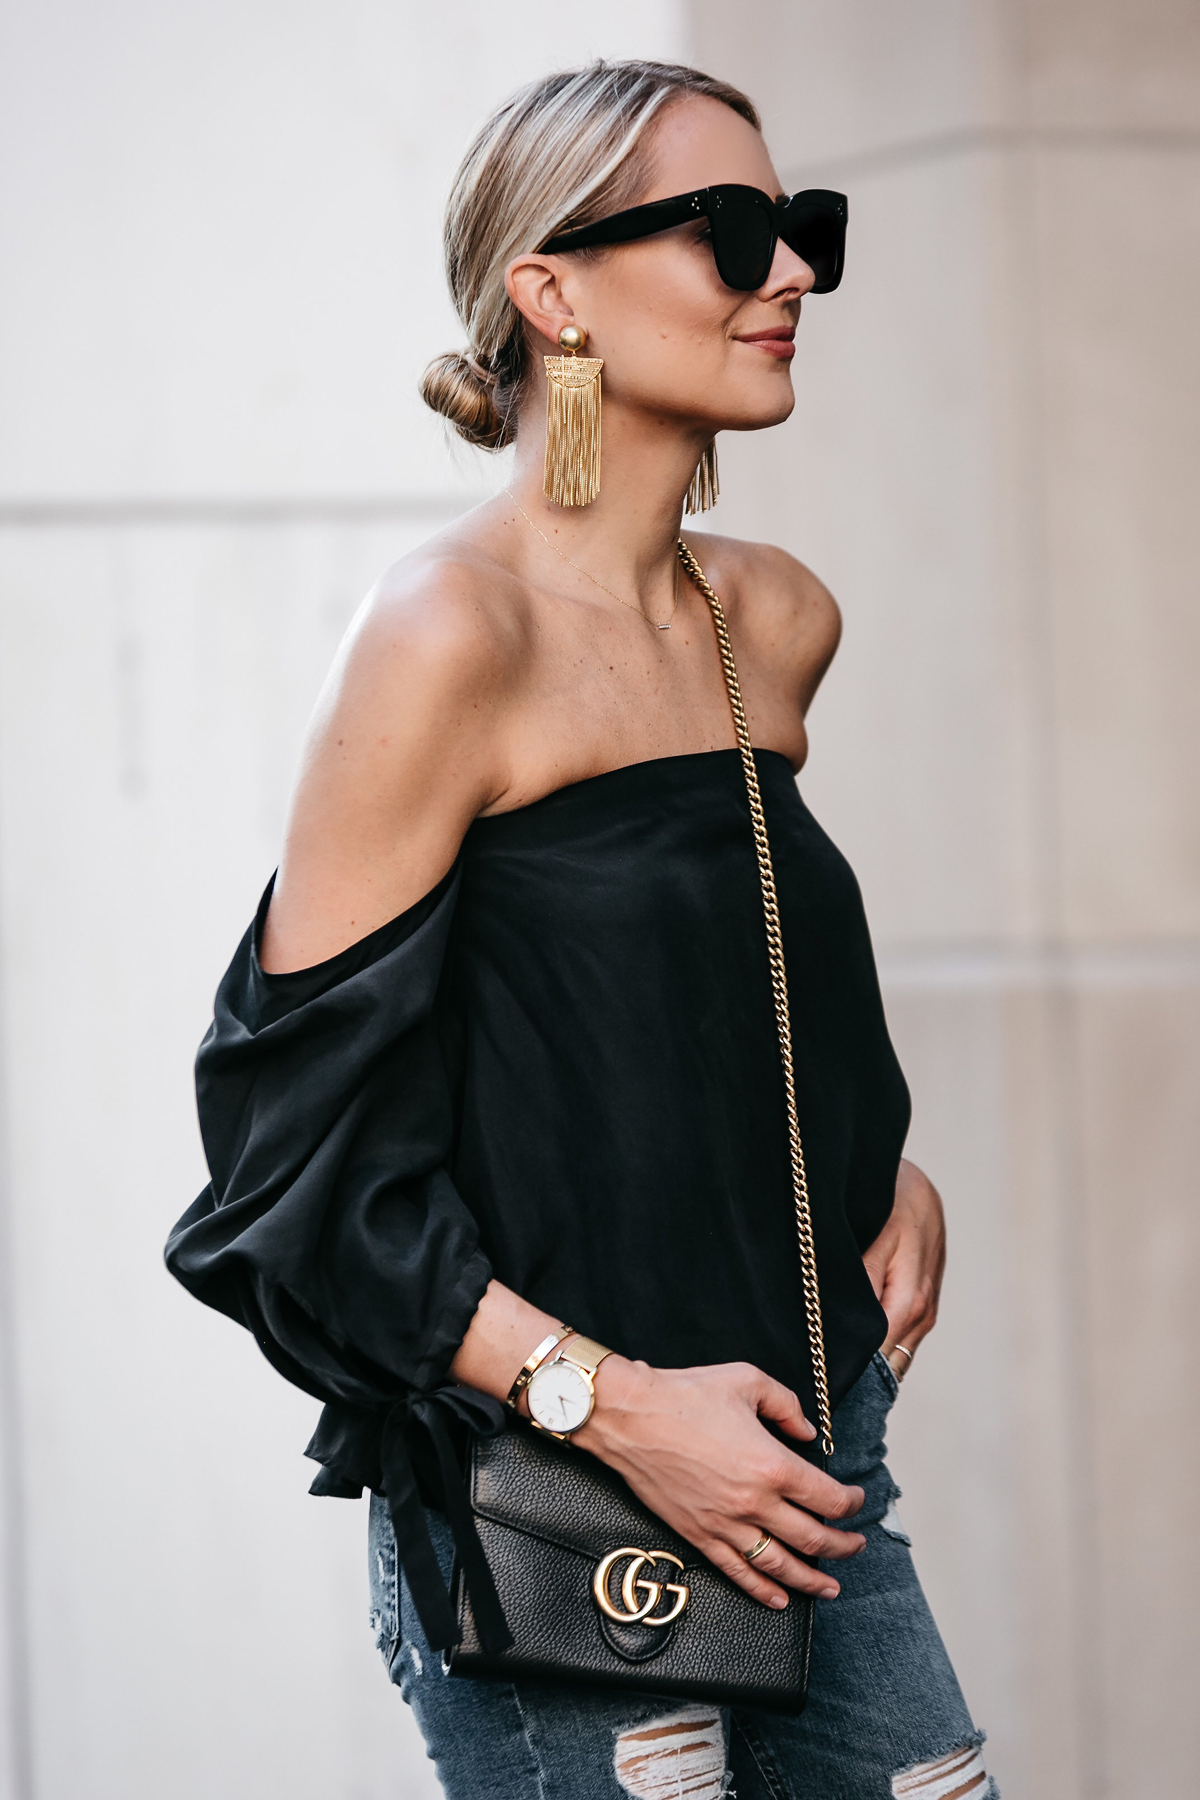 Blonde Woman Wearing Club Monaco Black Off-the-Shoulder Top Gucci Marmont Handbag Large Gold Tassel Earrings